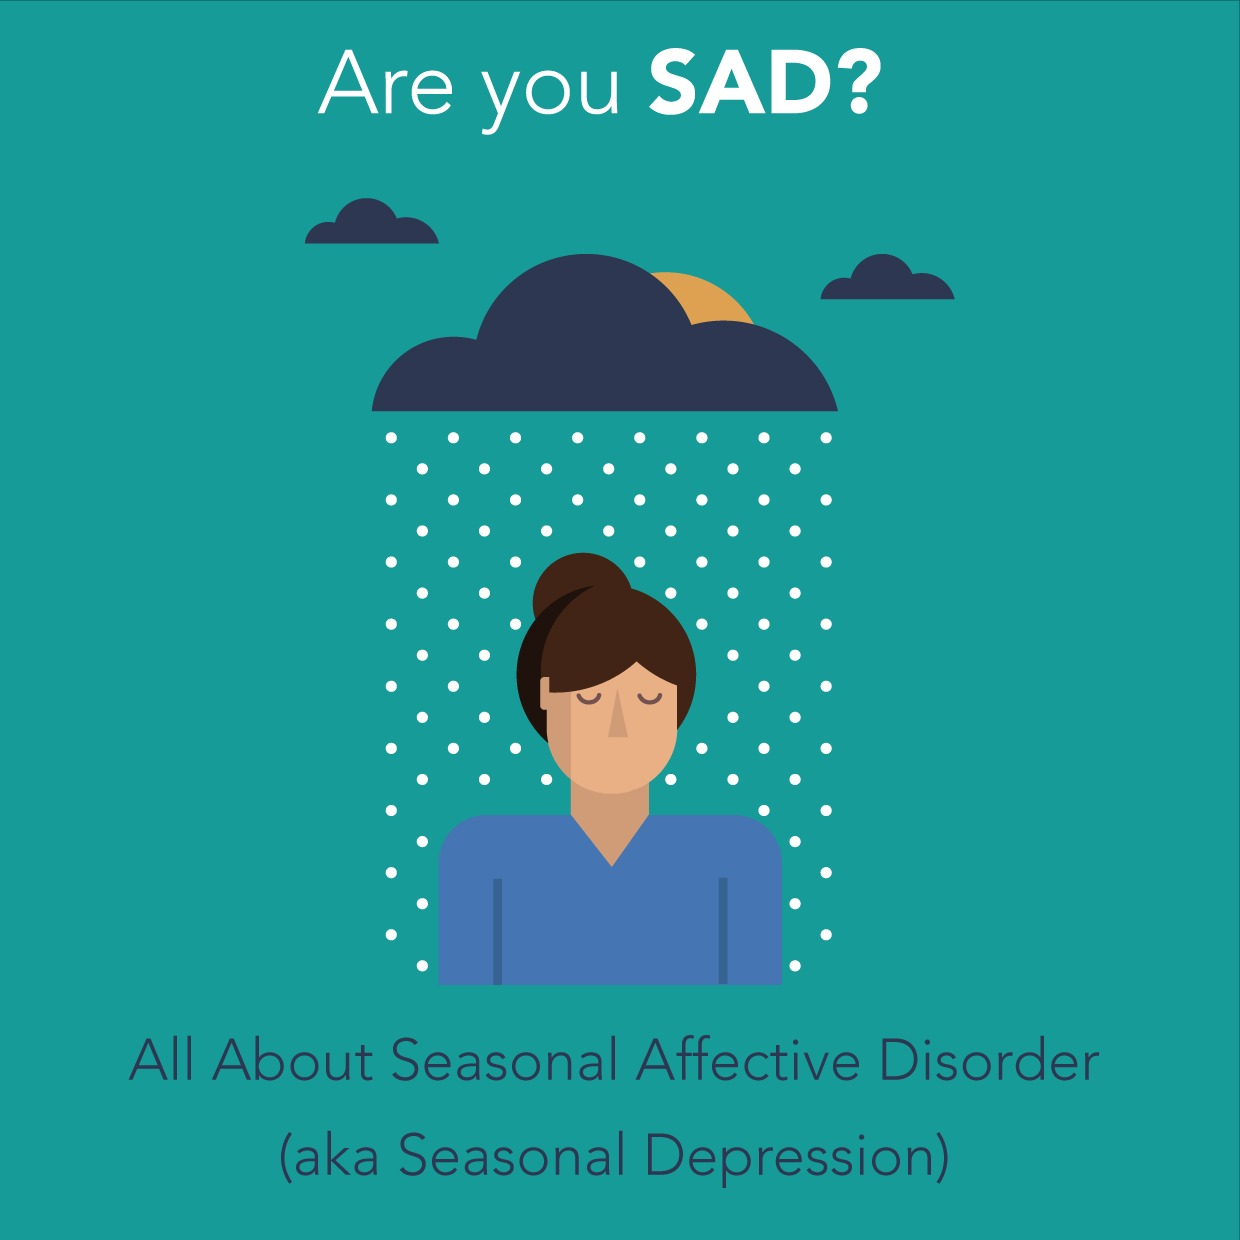 Picture shows drawn woman standing below a raining cloud with the words are you sad abbove the picture and all about seasonal affected disorder underneath